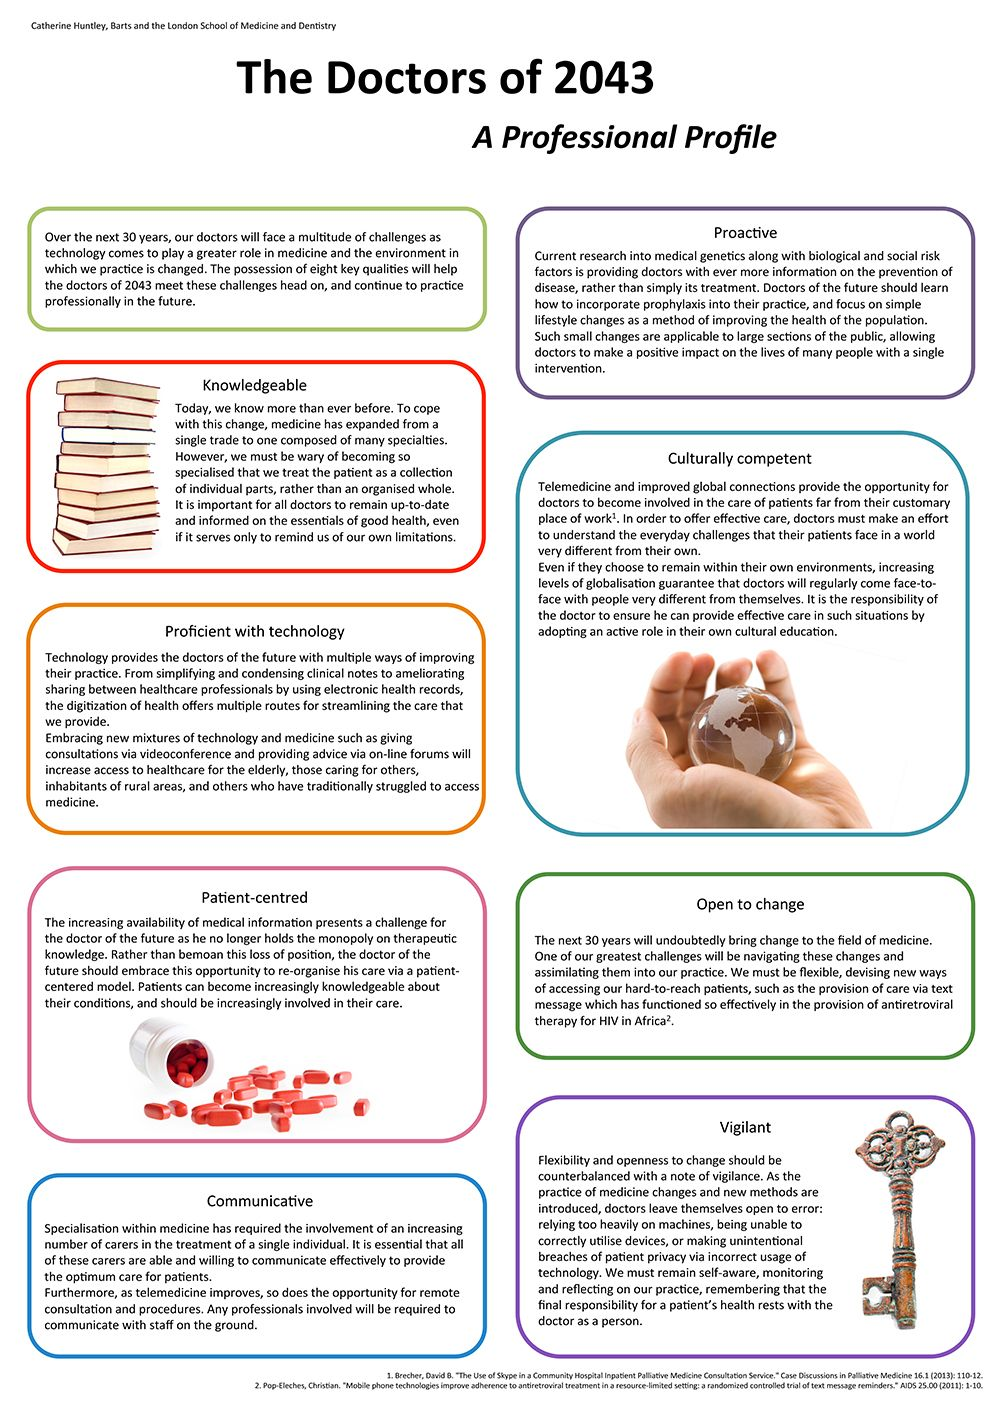 student poster competition the doctors of a professional student poster competition the doctors of 2013 a professional profile by catherine huntley of